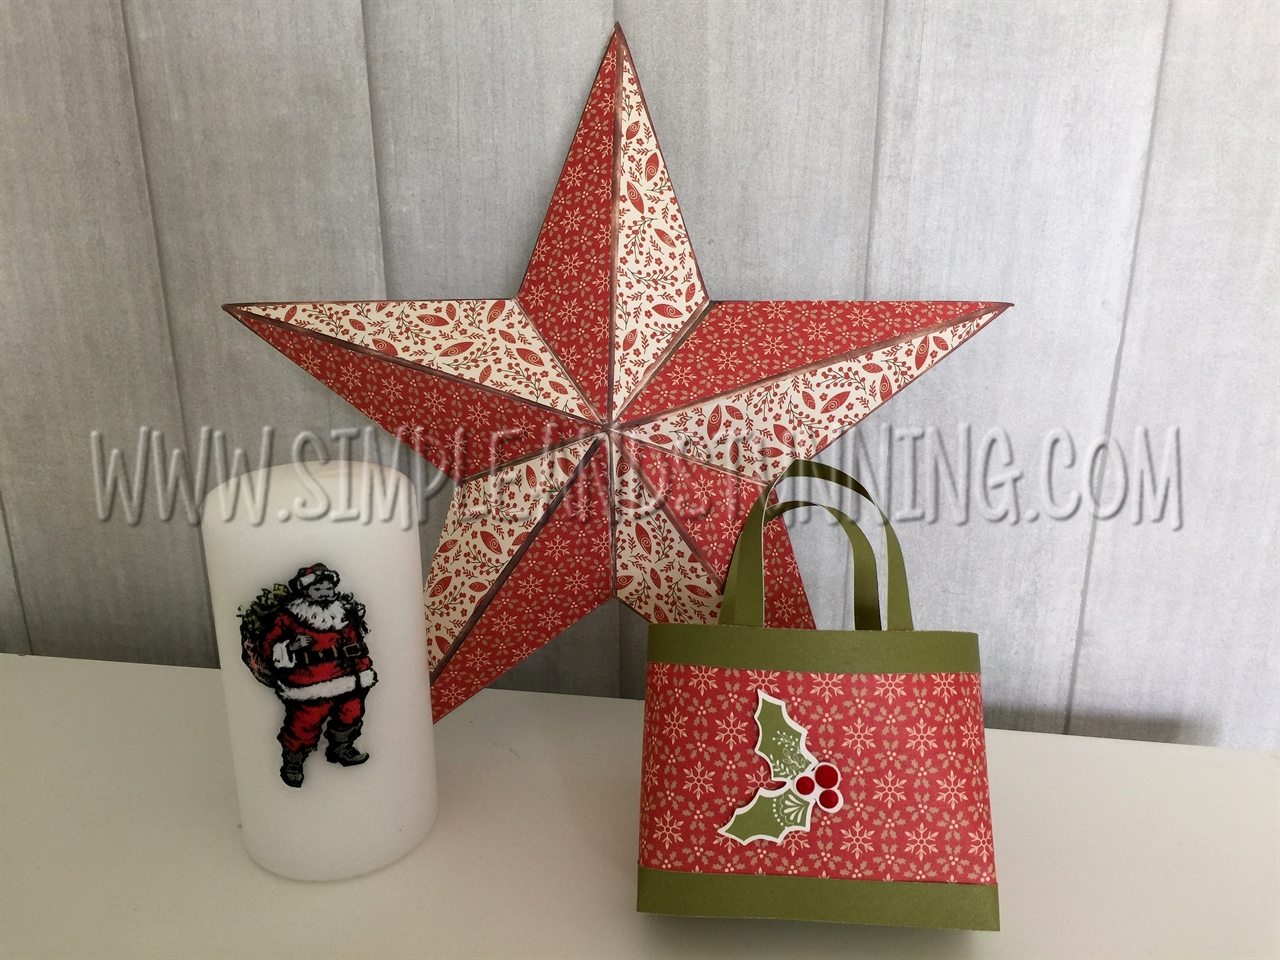 Christmas ideas for the home and giving.